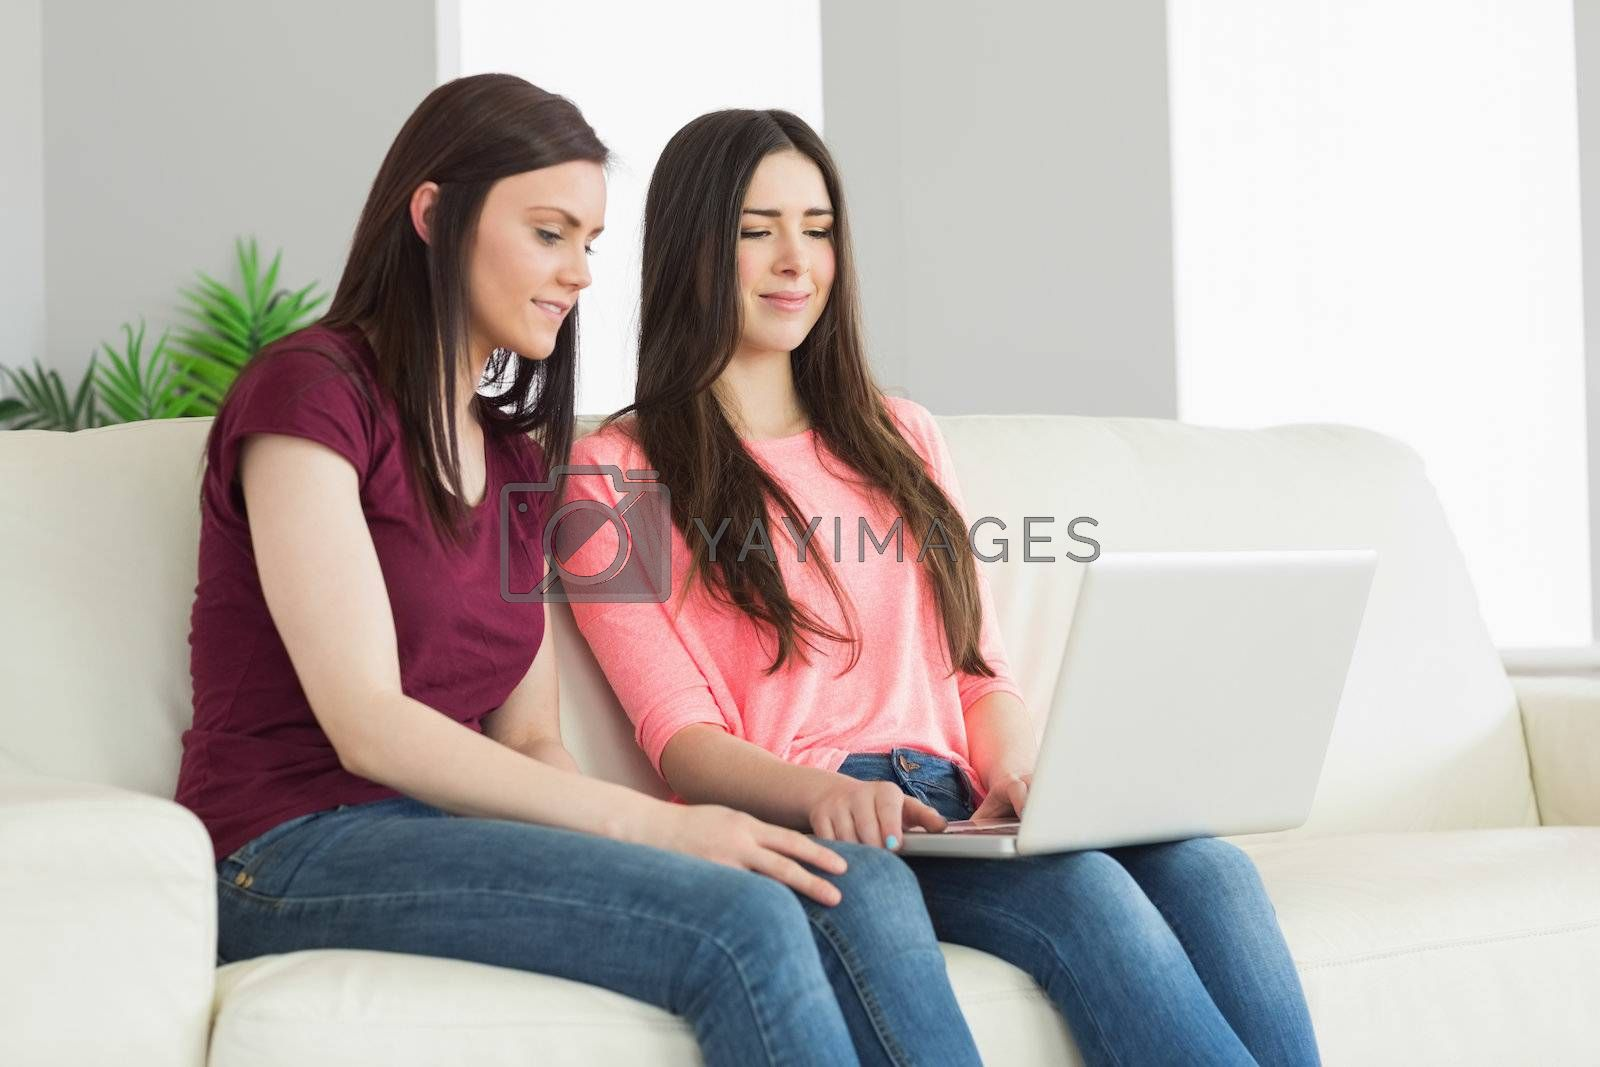 Two teenagers sitting on a sofa and watching a laptop by Wavebreakmedia